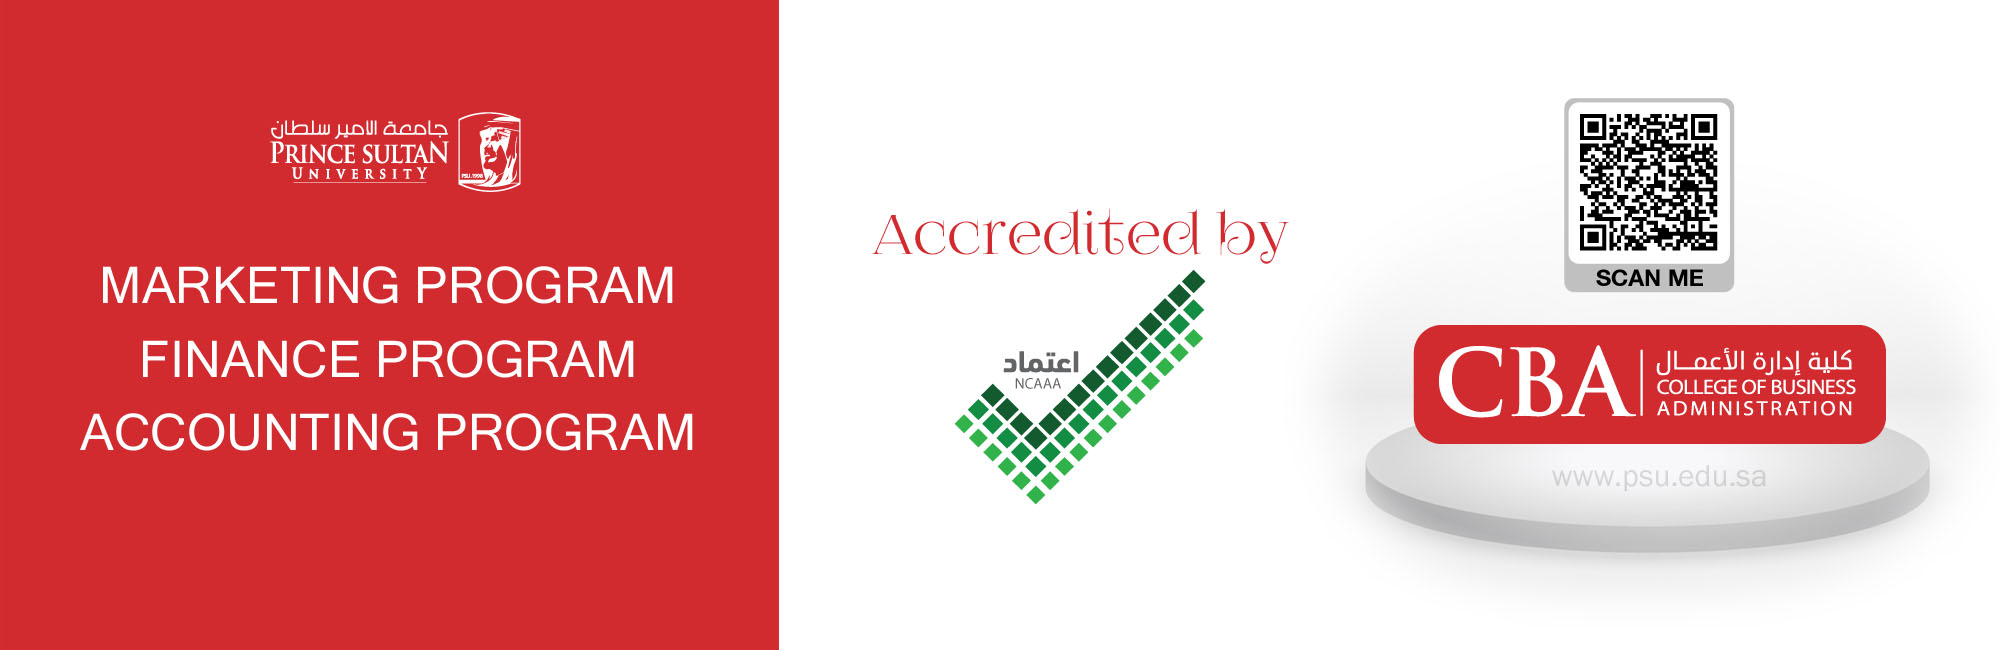 College of Business Administration Accreditation